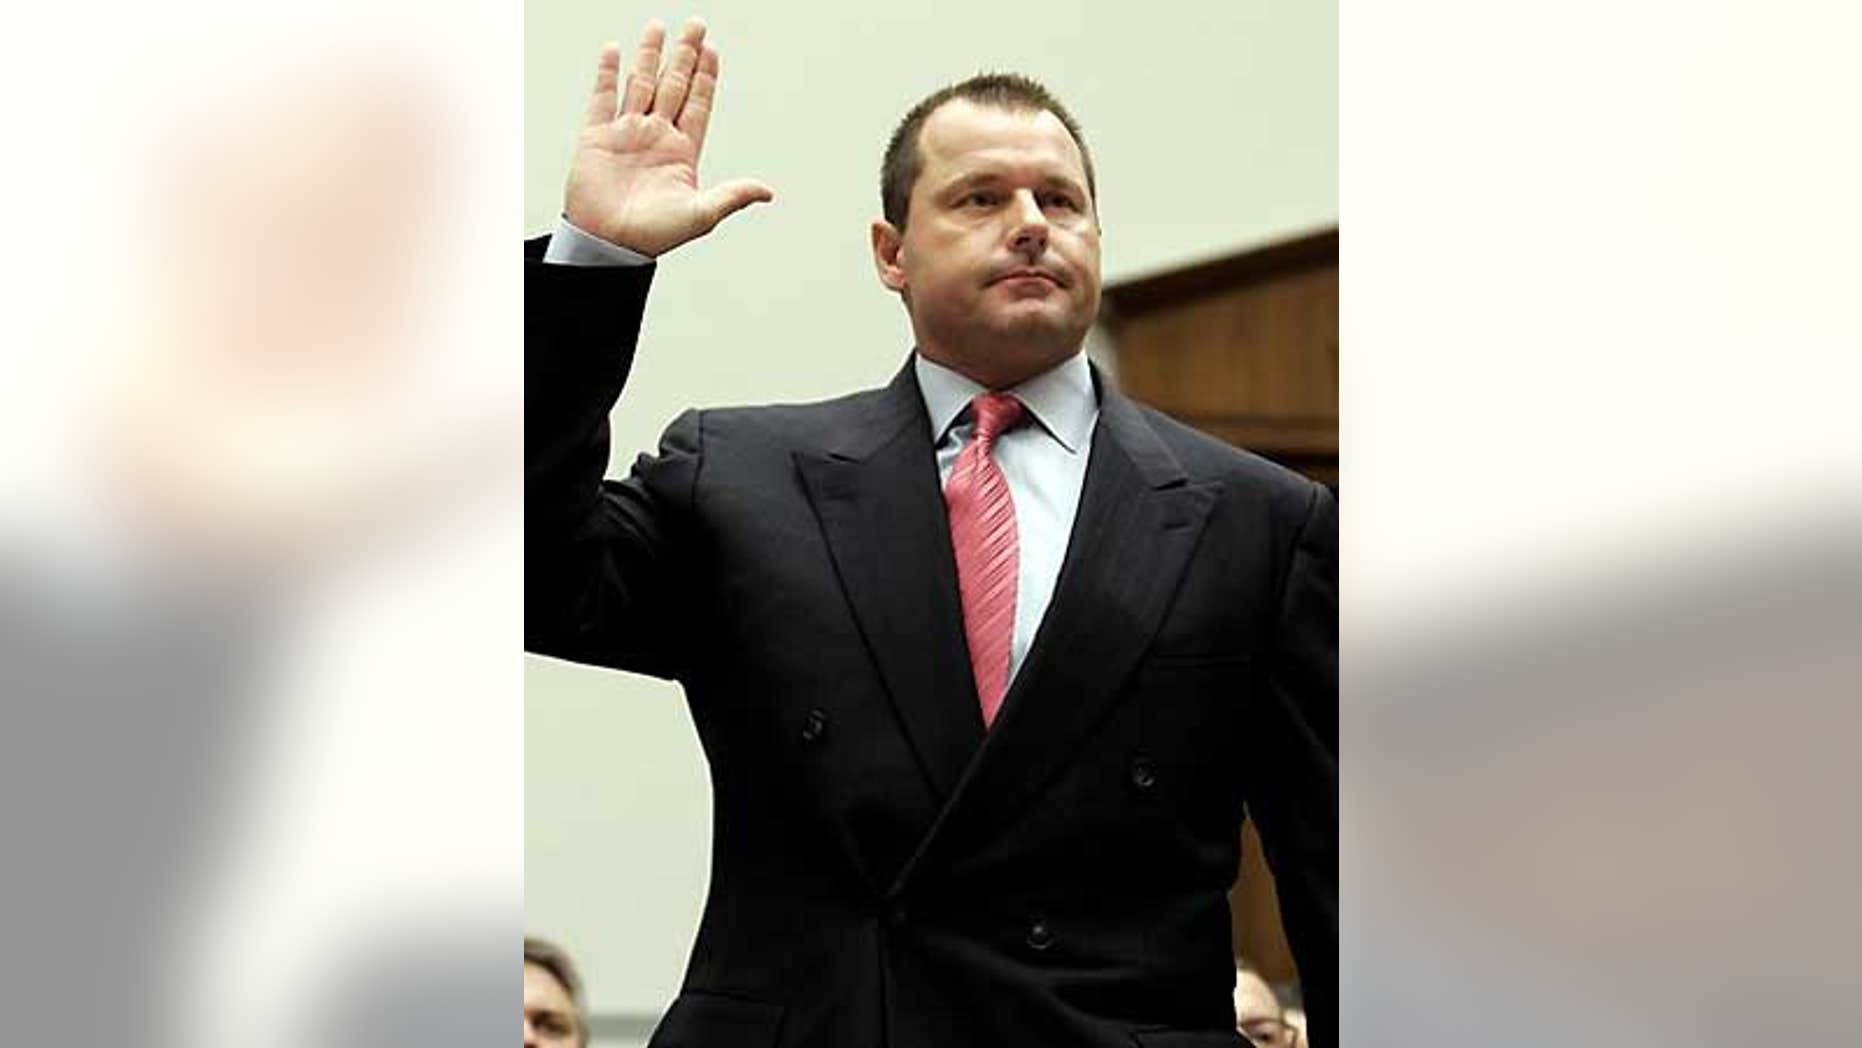 Feb. 13, 2008: Roger Clemens testifies before Congres about steroid use.